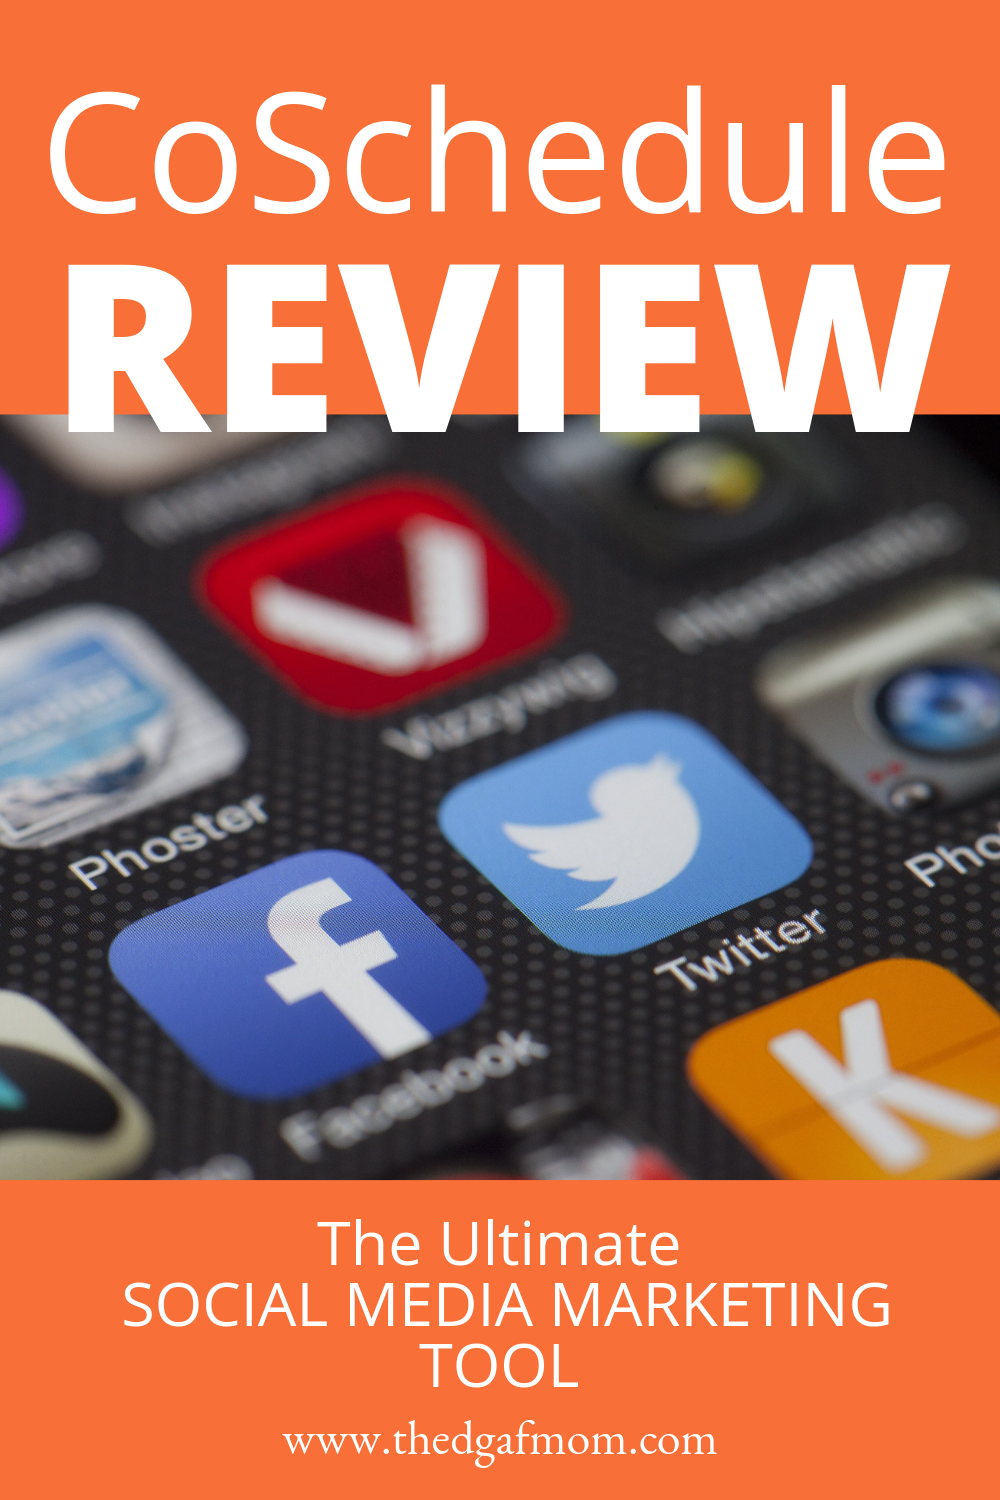 Coschedule Review. Do you use social media to market your blog? Save tons of time and money with a scheduling ap that helps you promote your best content time and again through re-queue.